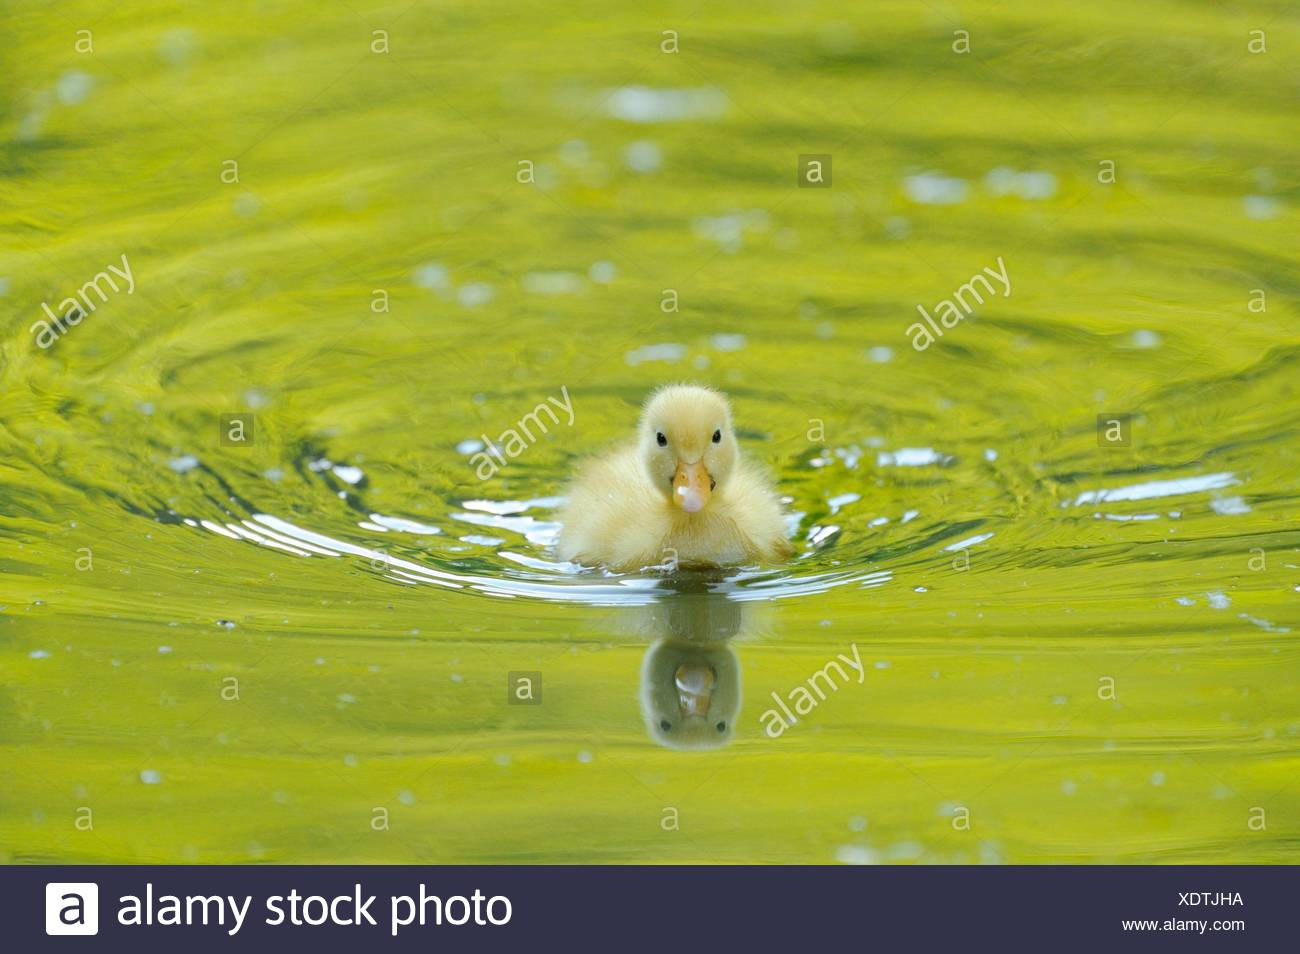 Long Island duck chick in water - Stock Image